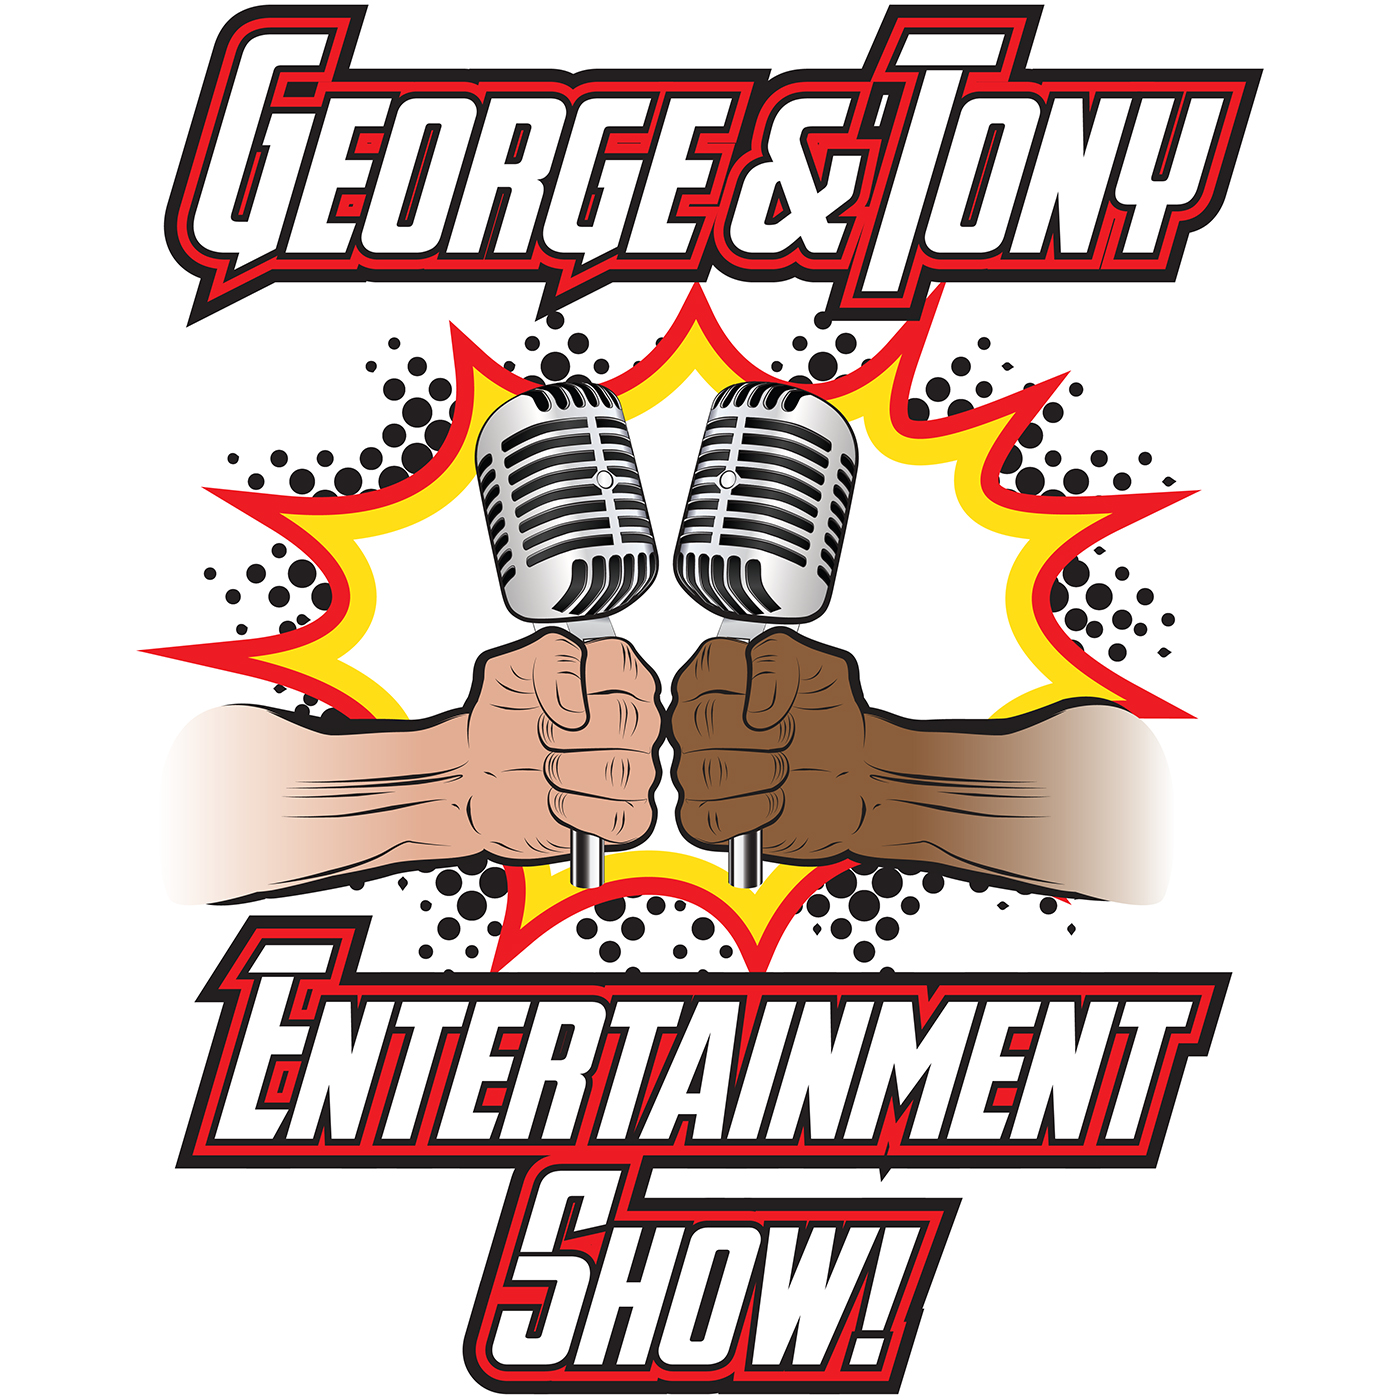 George and Tony Entertainment Show #87